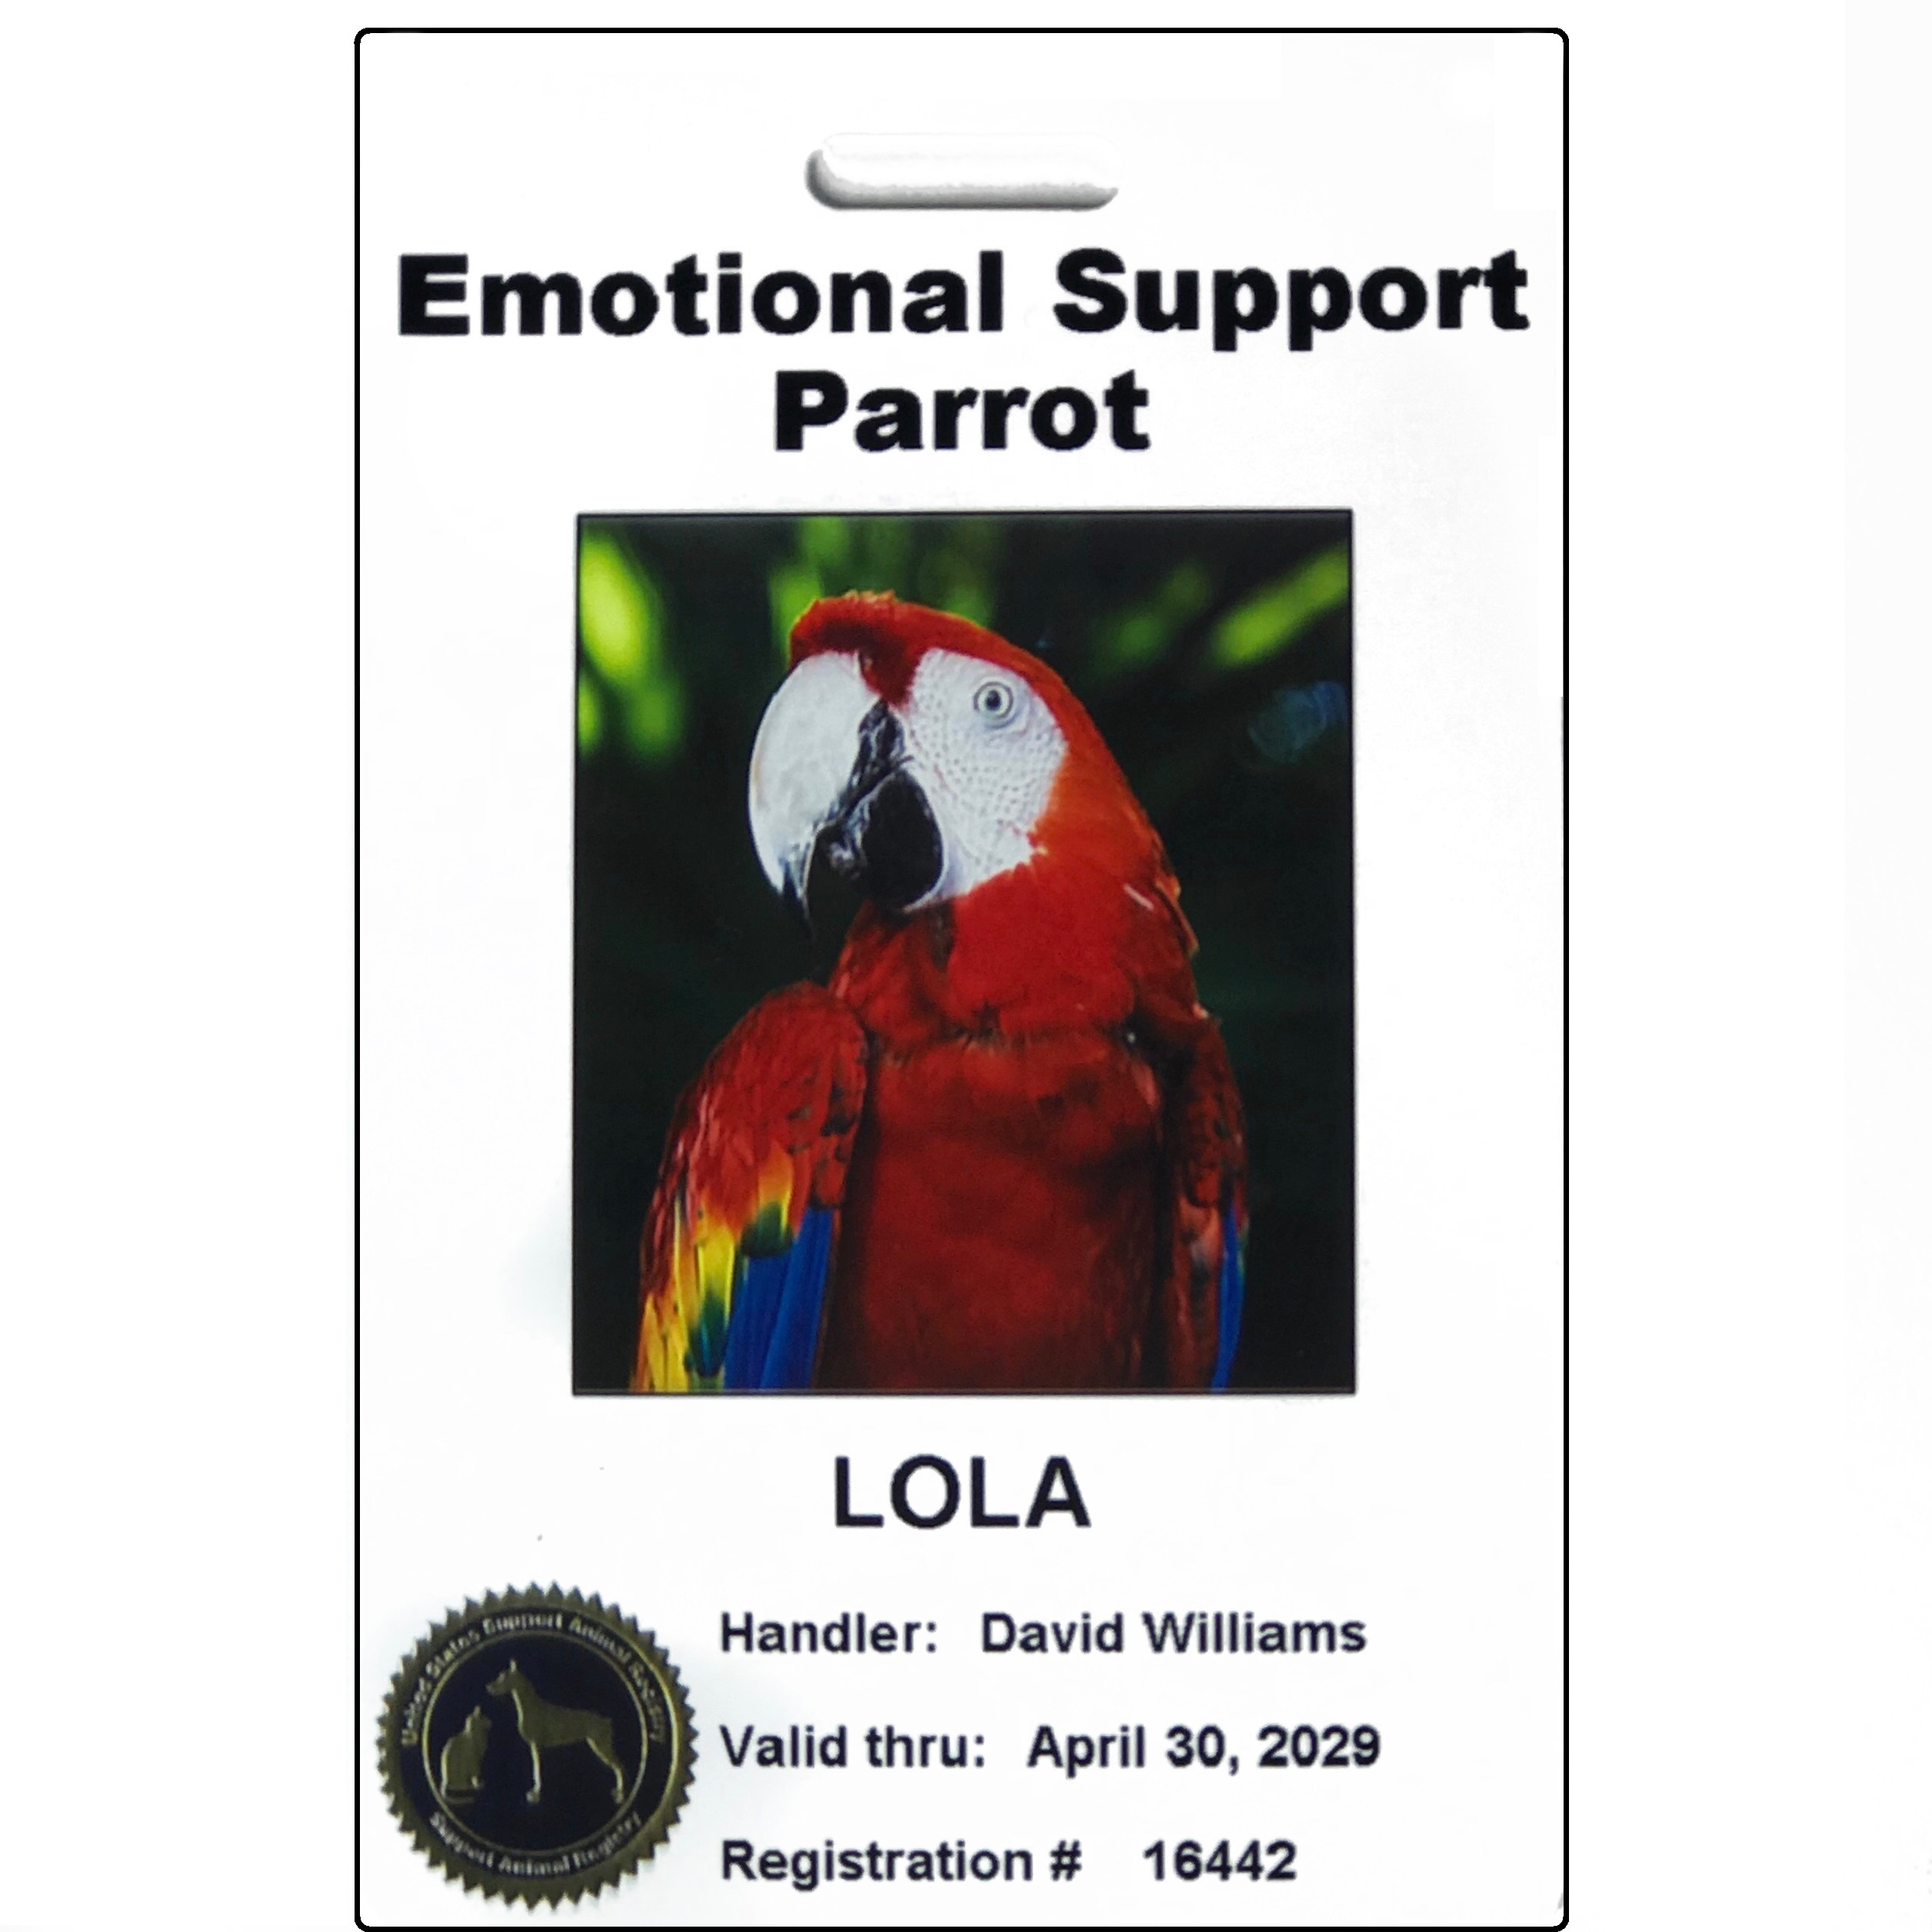 Emotional Support Parrot